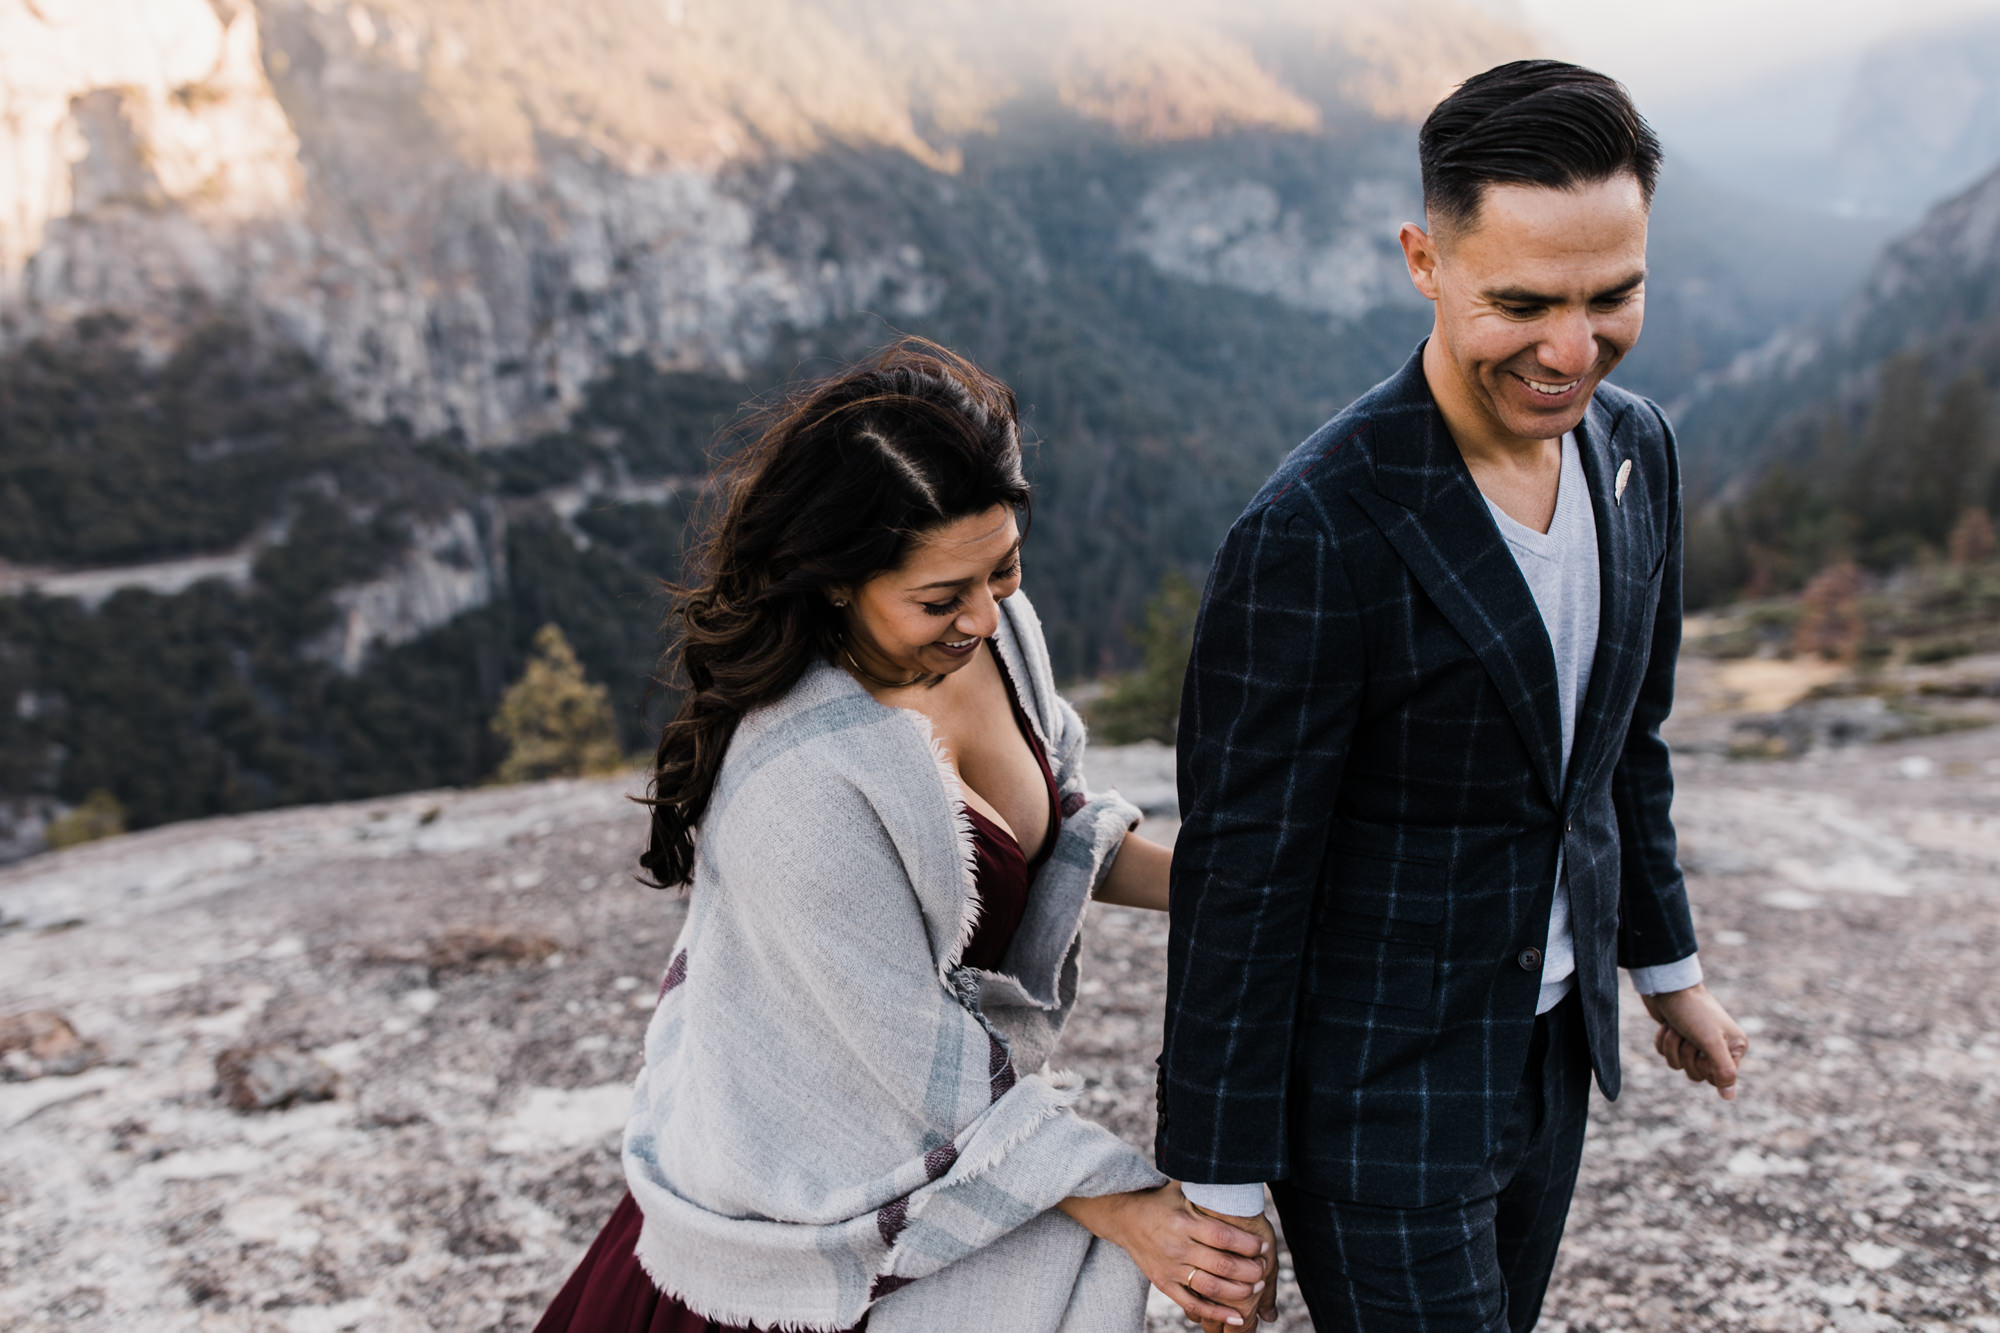 ray + ema's adventurous fall engagement session | yosemite national park | california adventure elopement photographer | the hearnes adventure photography | www.thehearnes.com